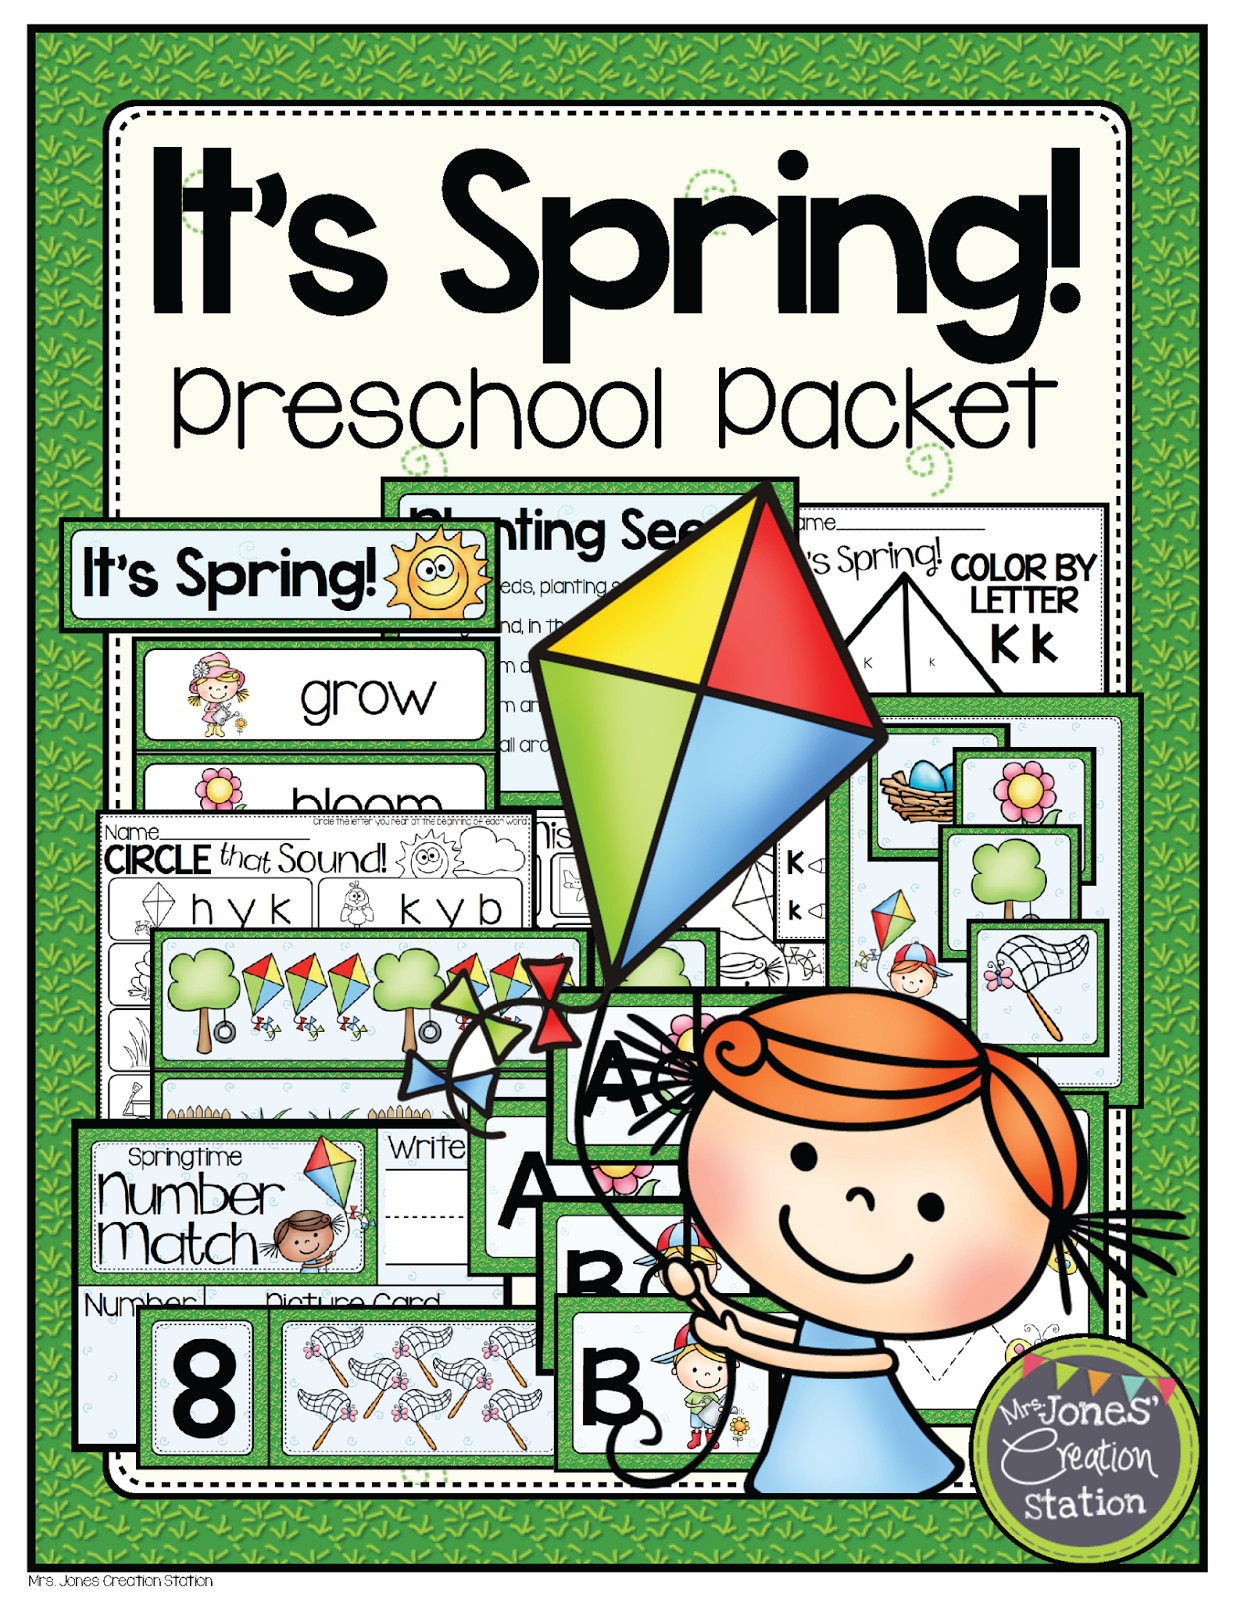 Mrs Jones Creation Station Spring Preschool Pack